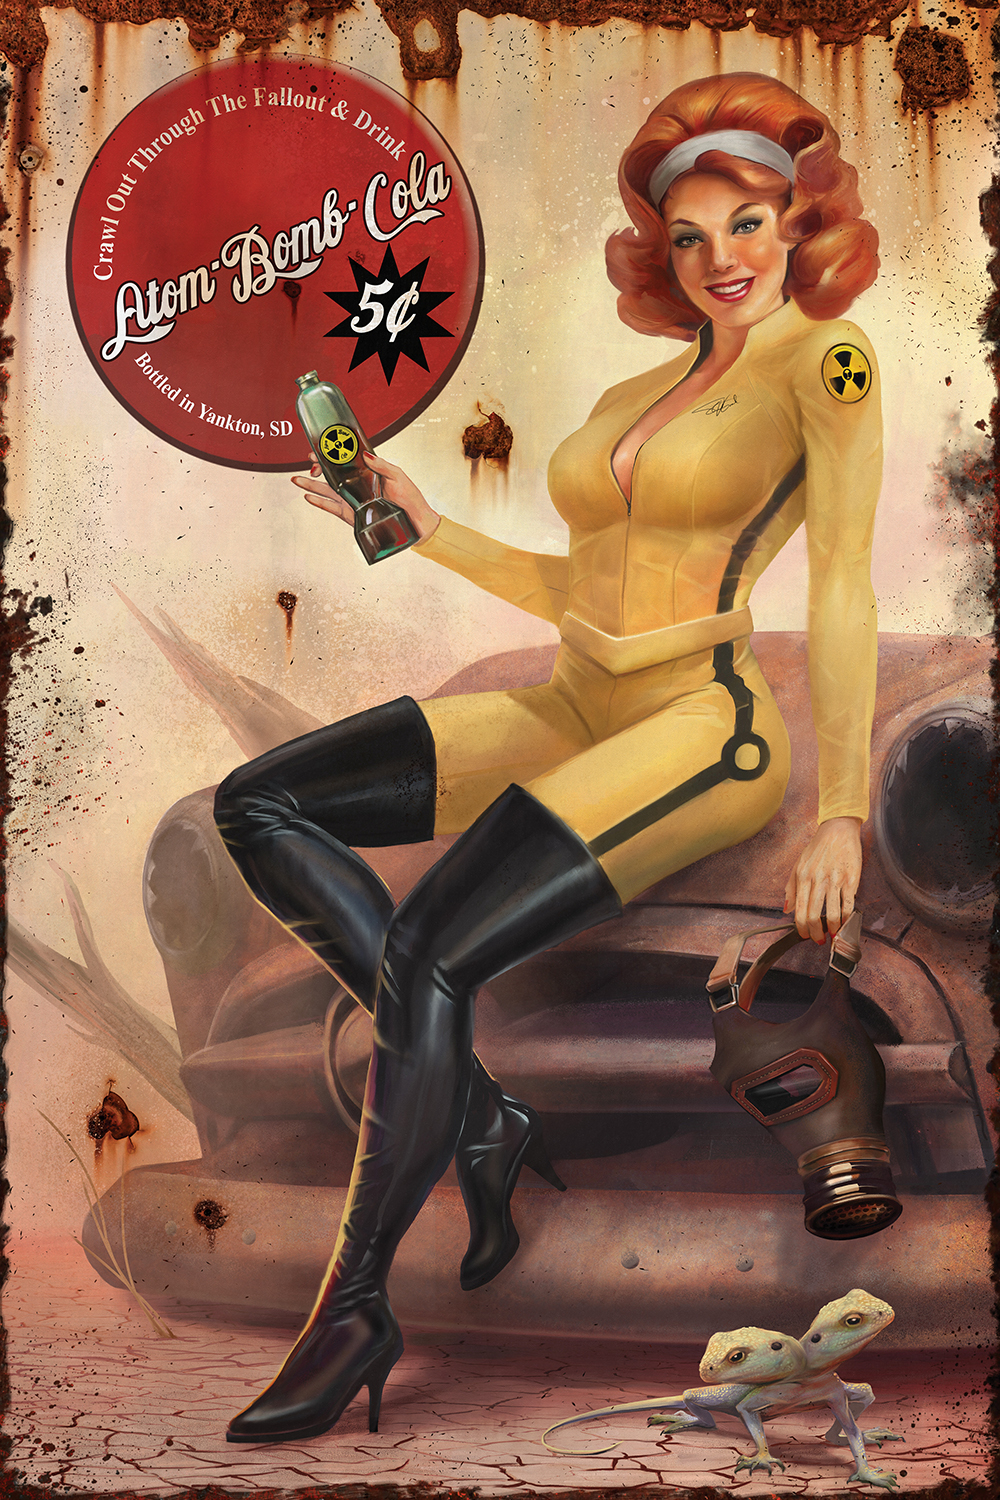 A woman with red hair in yellow jumpsuit and thigh-high boots holding a gas mask sitting on a broken car holding a bottle of atom bomb cola